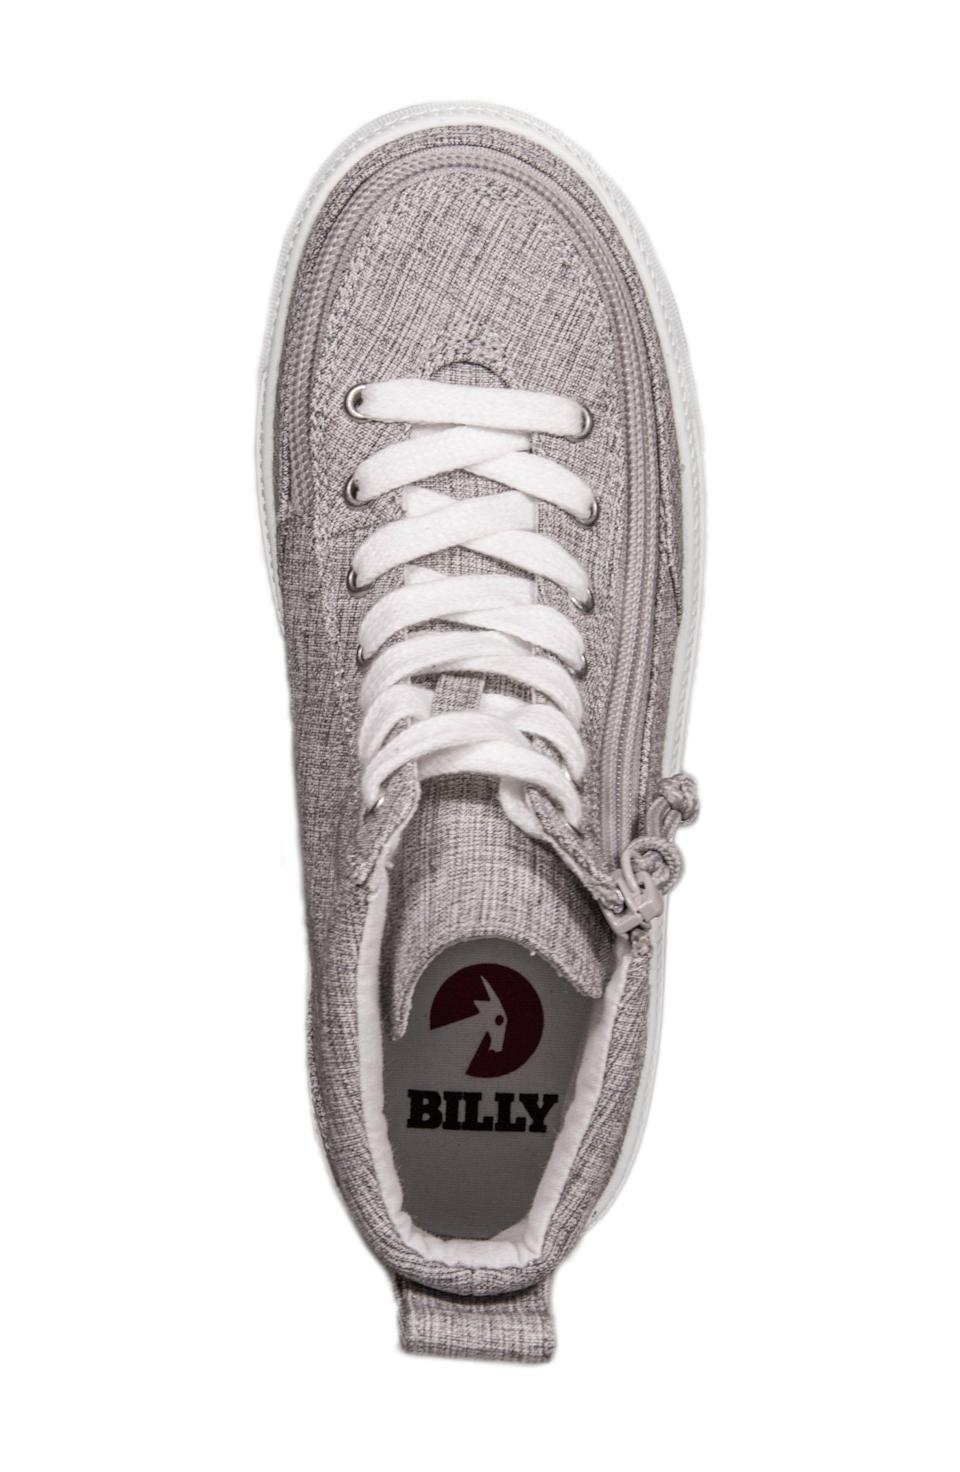 "<p><strong>BILLY FOOTWEAR</strong></p><p>nordstrom.com</p><p><strong>$33.00</strong></p><p><a href=""https://go.redirectingat.com?id=74968X1596630&url=https%3A%2F%2Fwww.nordstrom.com%2Fs%2Fbilly-footwear-zip-around-high-top-sneaker-toddler-little-kid-big-kid%2F5815502&sref=https%3A%2F%2Fwww.redbookmag.com%2Flife%2Fg34811477%2Fblack-friday-cyber-monday-baby-deals-2020%2F"" rel=""nofollow noopener"" target=""_blank"" data-ylk=""slk:Shop Now"" class=""link rapid-noclick-resp"">Shop Now</a></p><p>Ideal for toddling around.</p>"